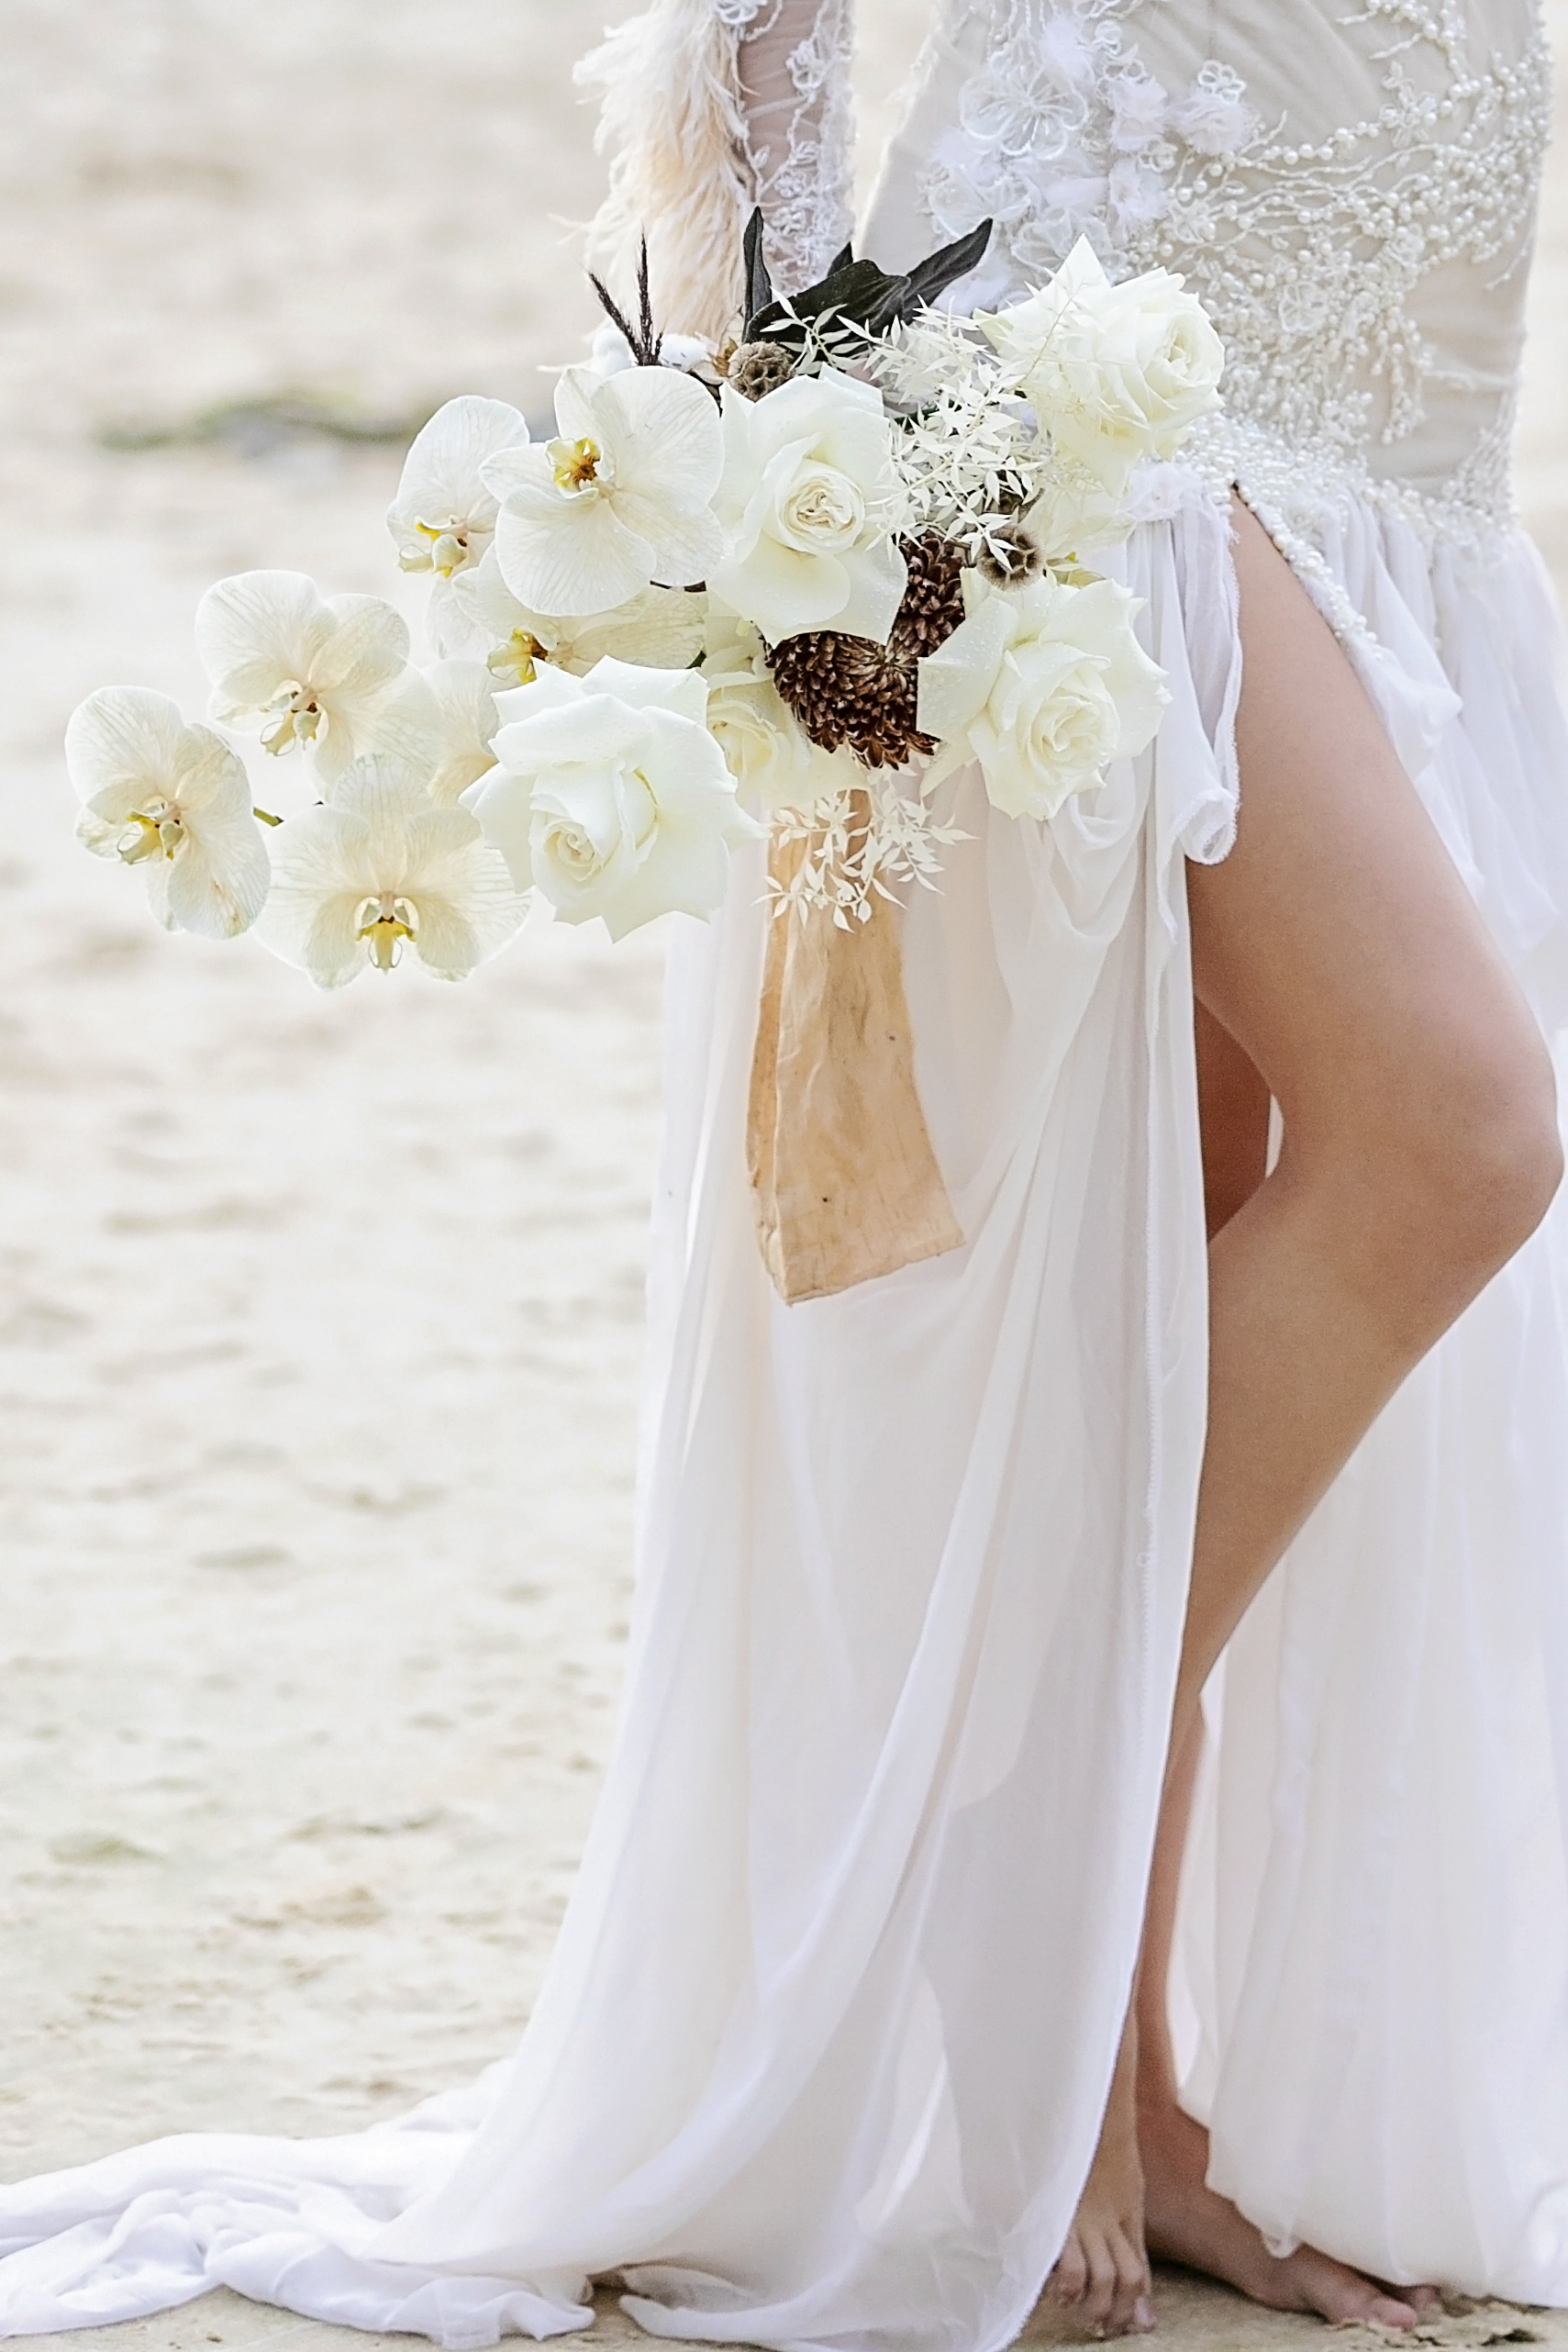 Noosa Wedding Inspiration With Modern White Roses and Orchids